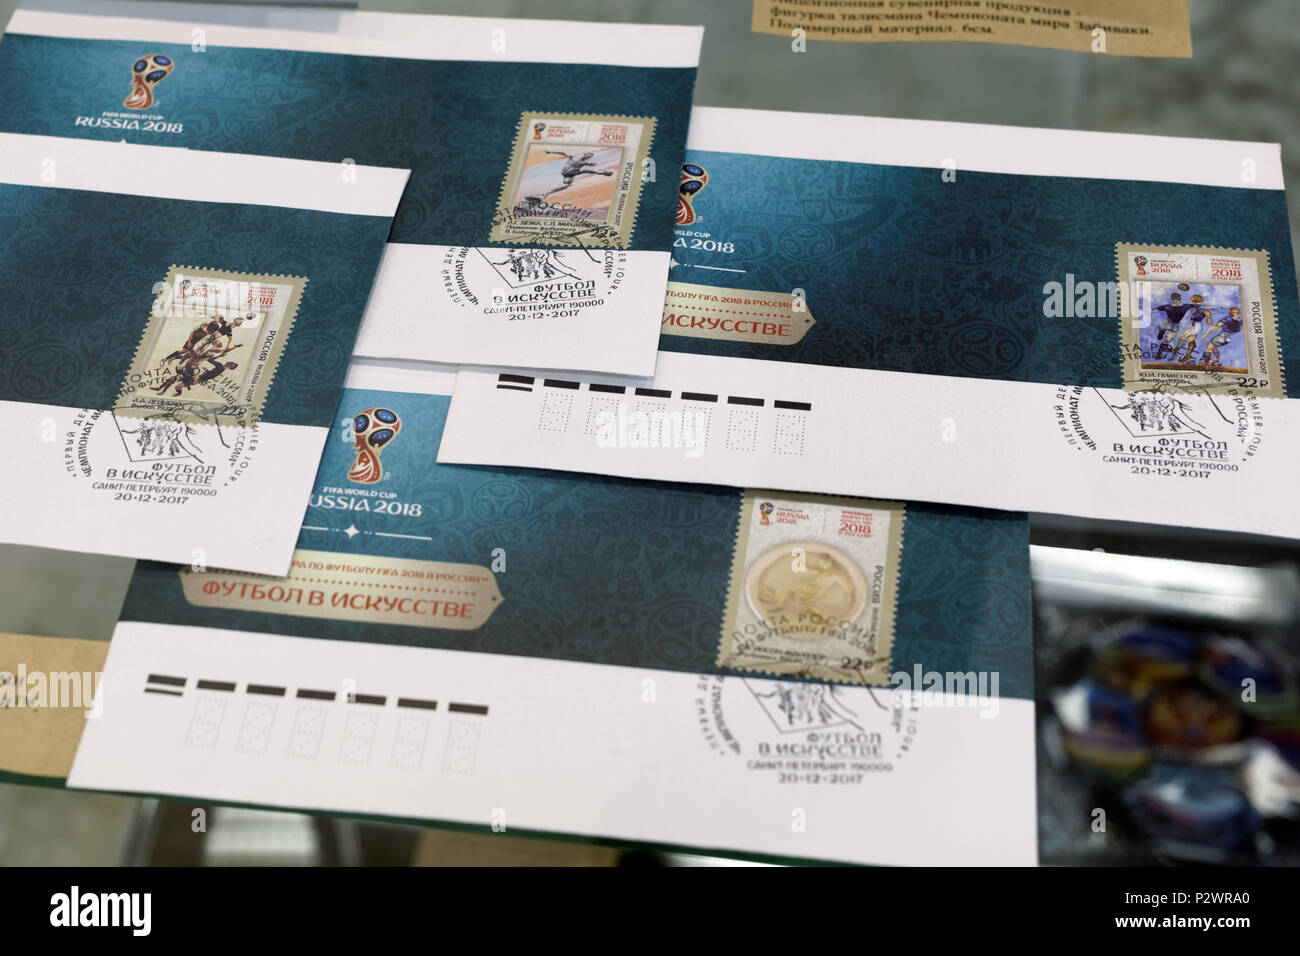 St. Petersburg, Russia - June 7, 2018: First day covers in the exhibition 'Goal!!! FIFA World Cups history' in the National Library of Russia. The exh - Stock Image